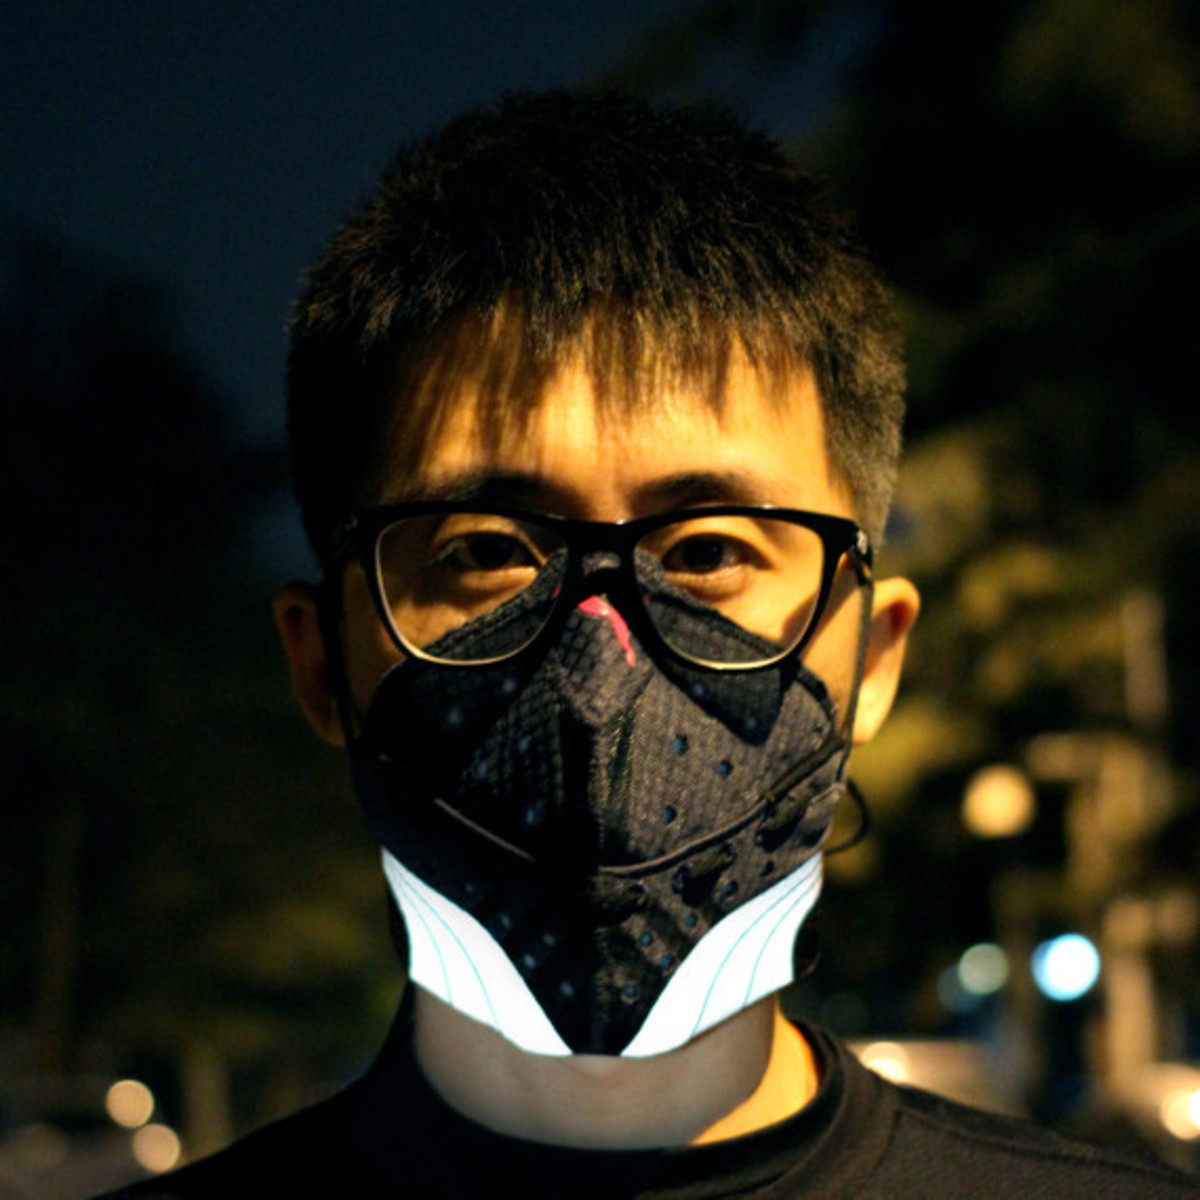 puma-faas-300-mask-by-zhijun-wang-01